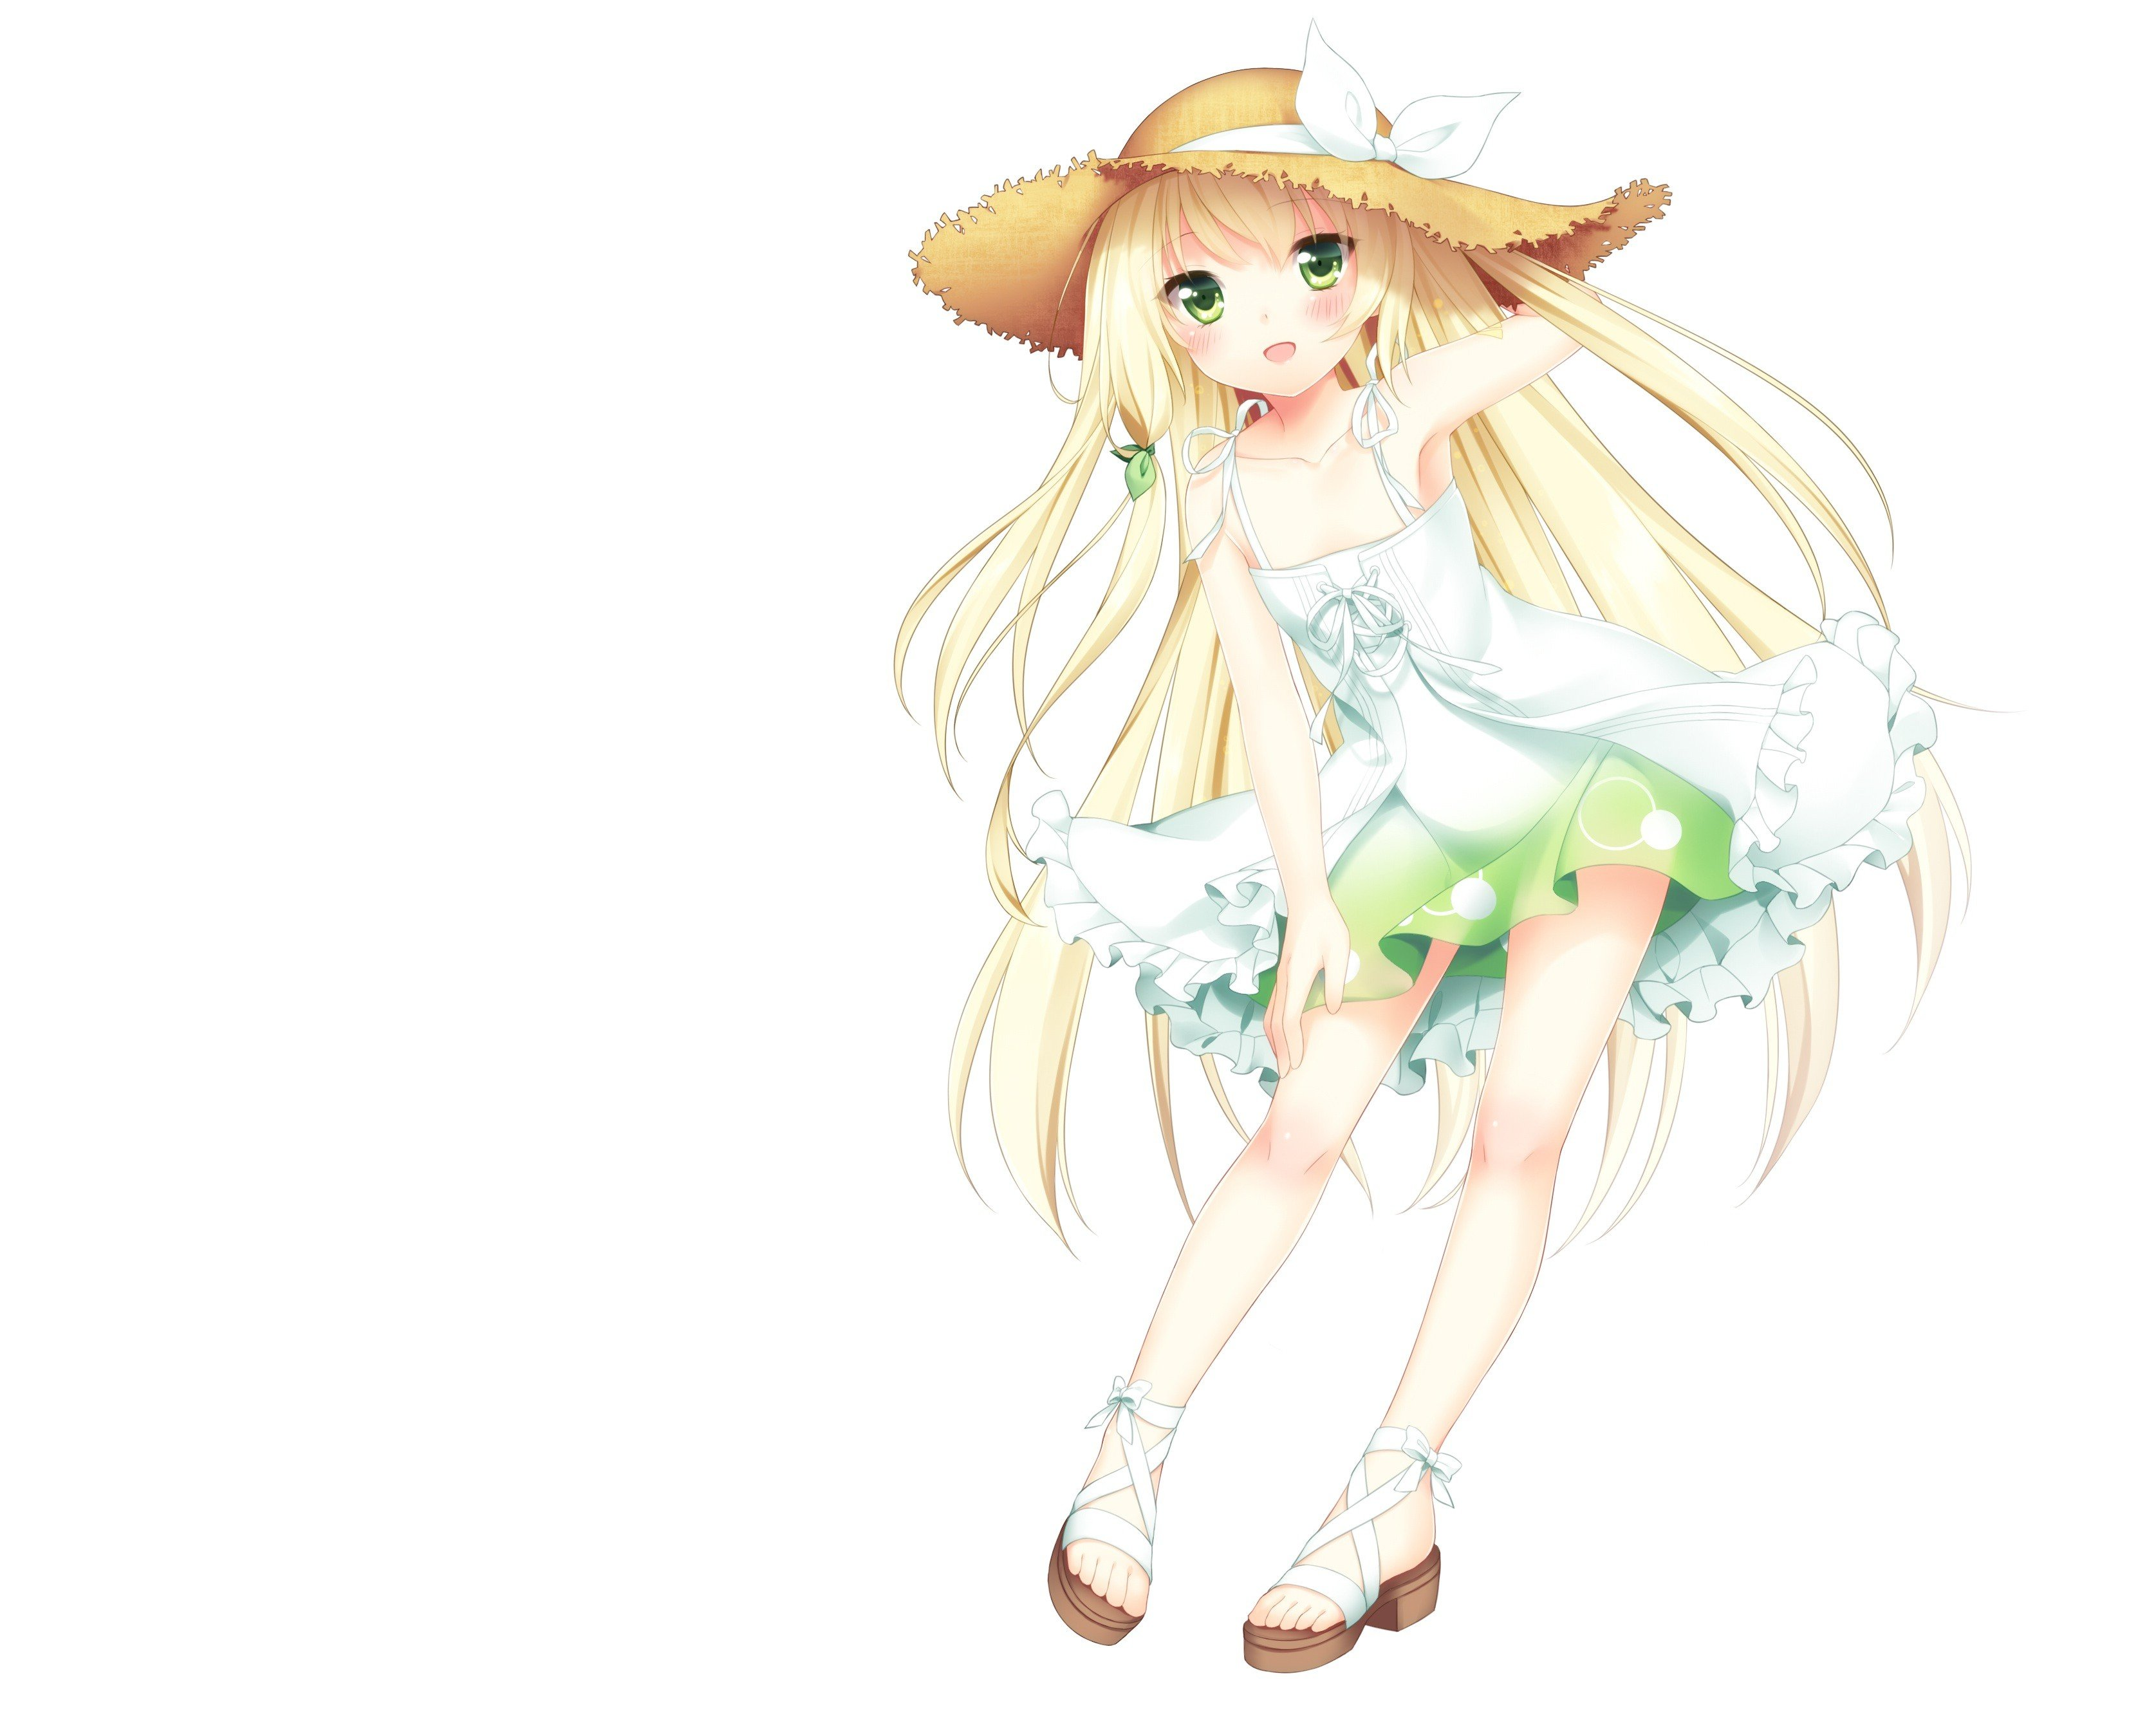 Green eyes blush anime girls white background summer dress original characters wallpaper 3350x2680 253626 wallpaperup